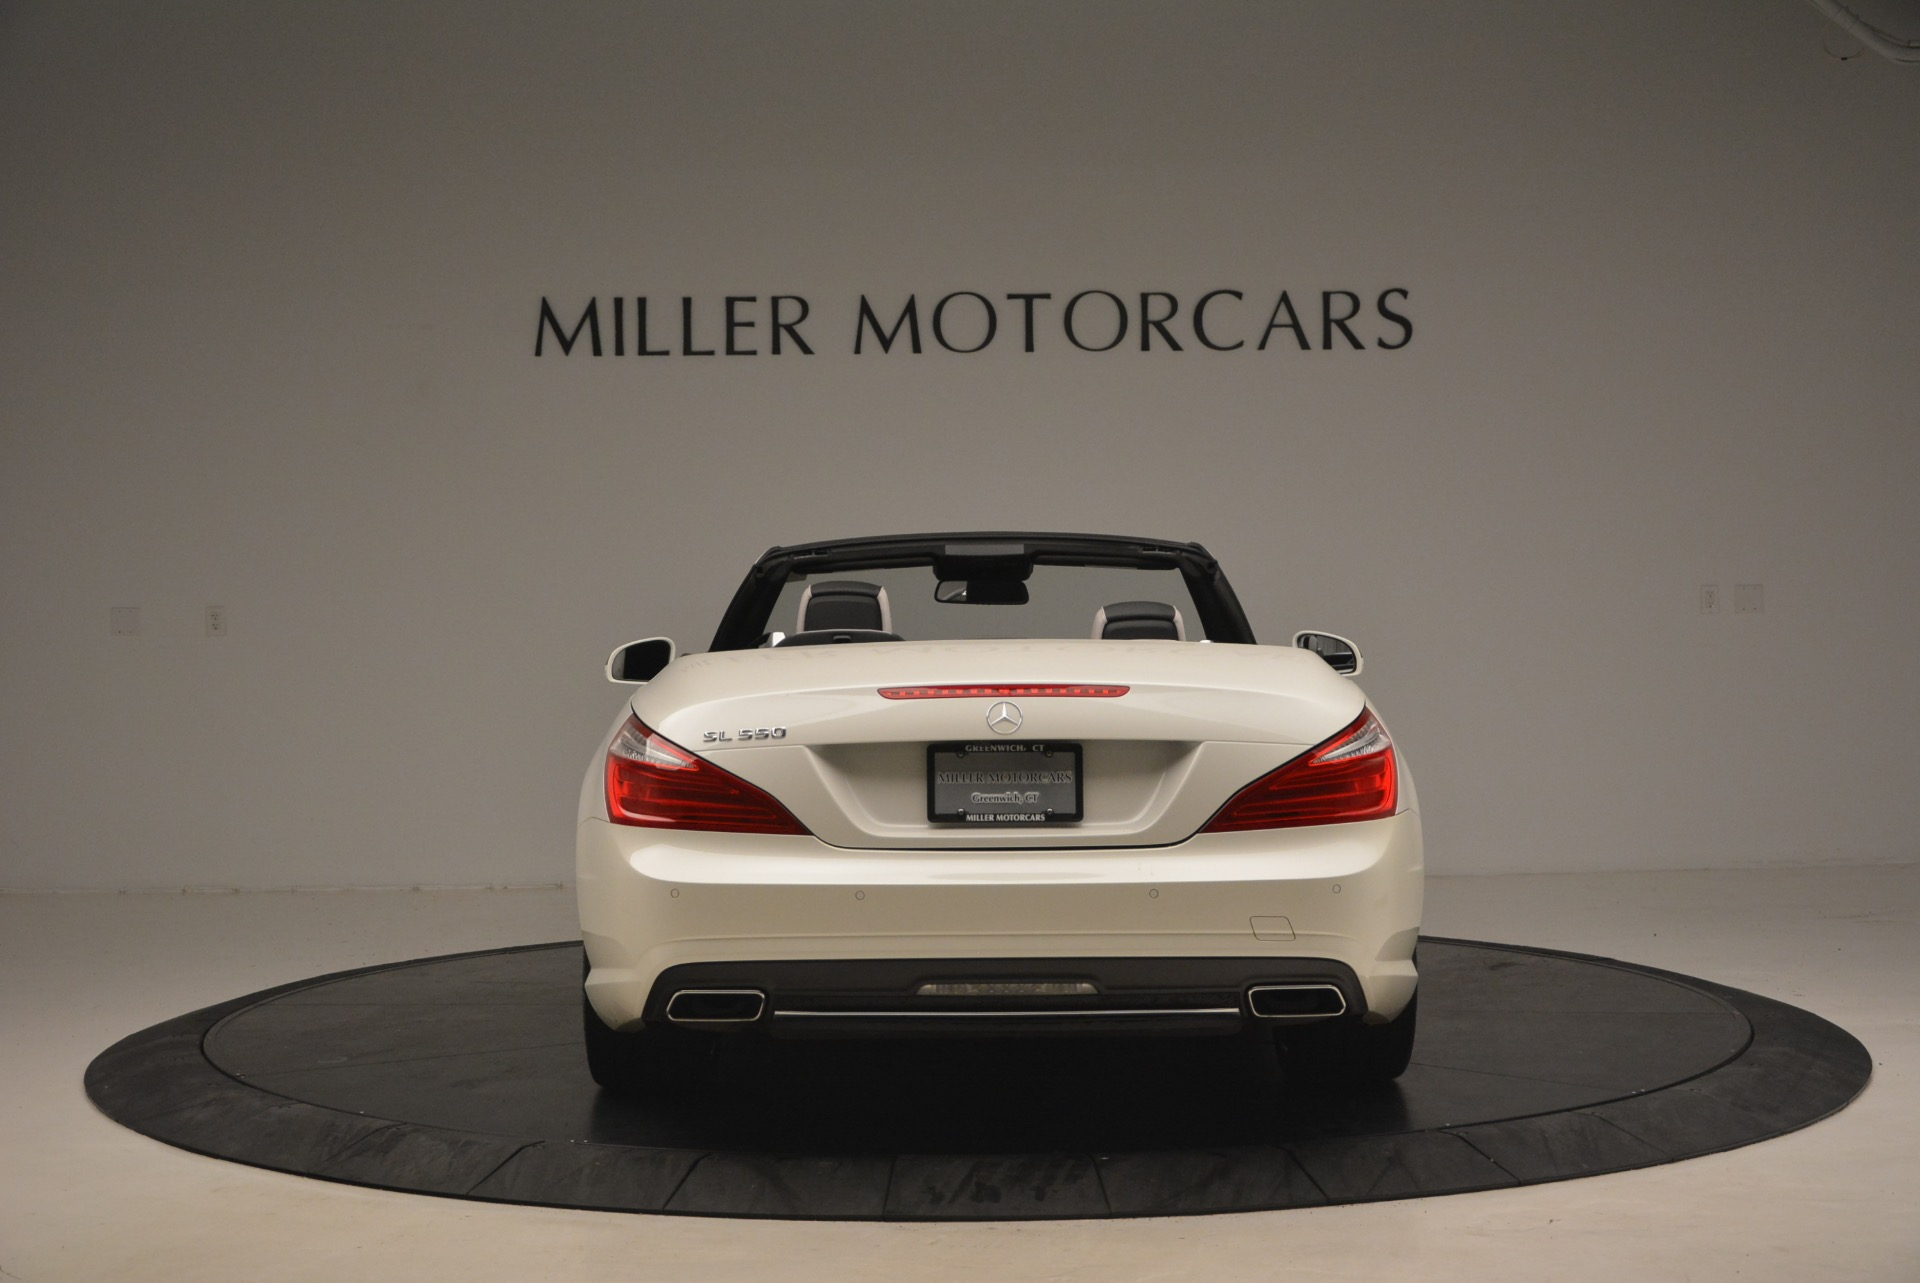 Used 2015 Mercedes Benz SL-Class SL 550 For Sale In Greenwich, CT 1261_p6